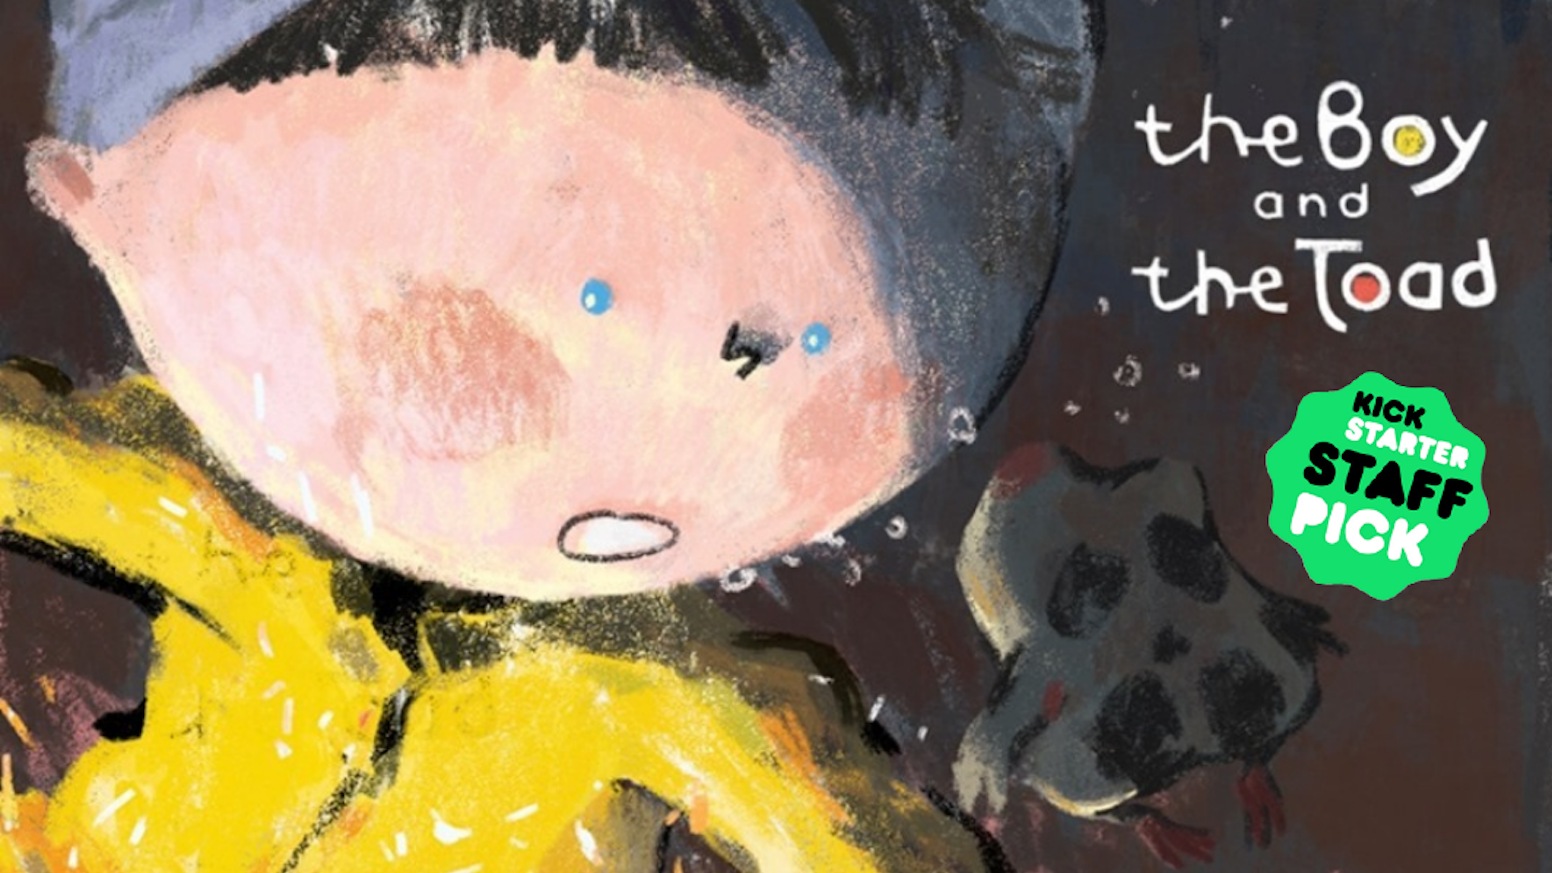 A Boy, a Toad and the dreamy underwater Kingdom of Canalia in an illustrated poetic tale!